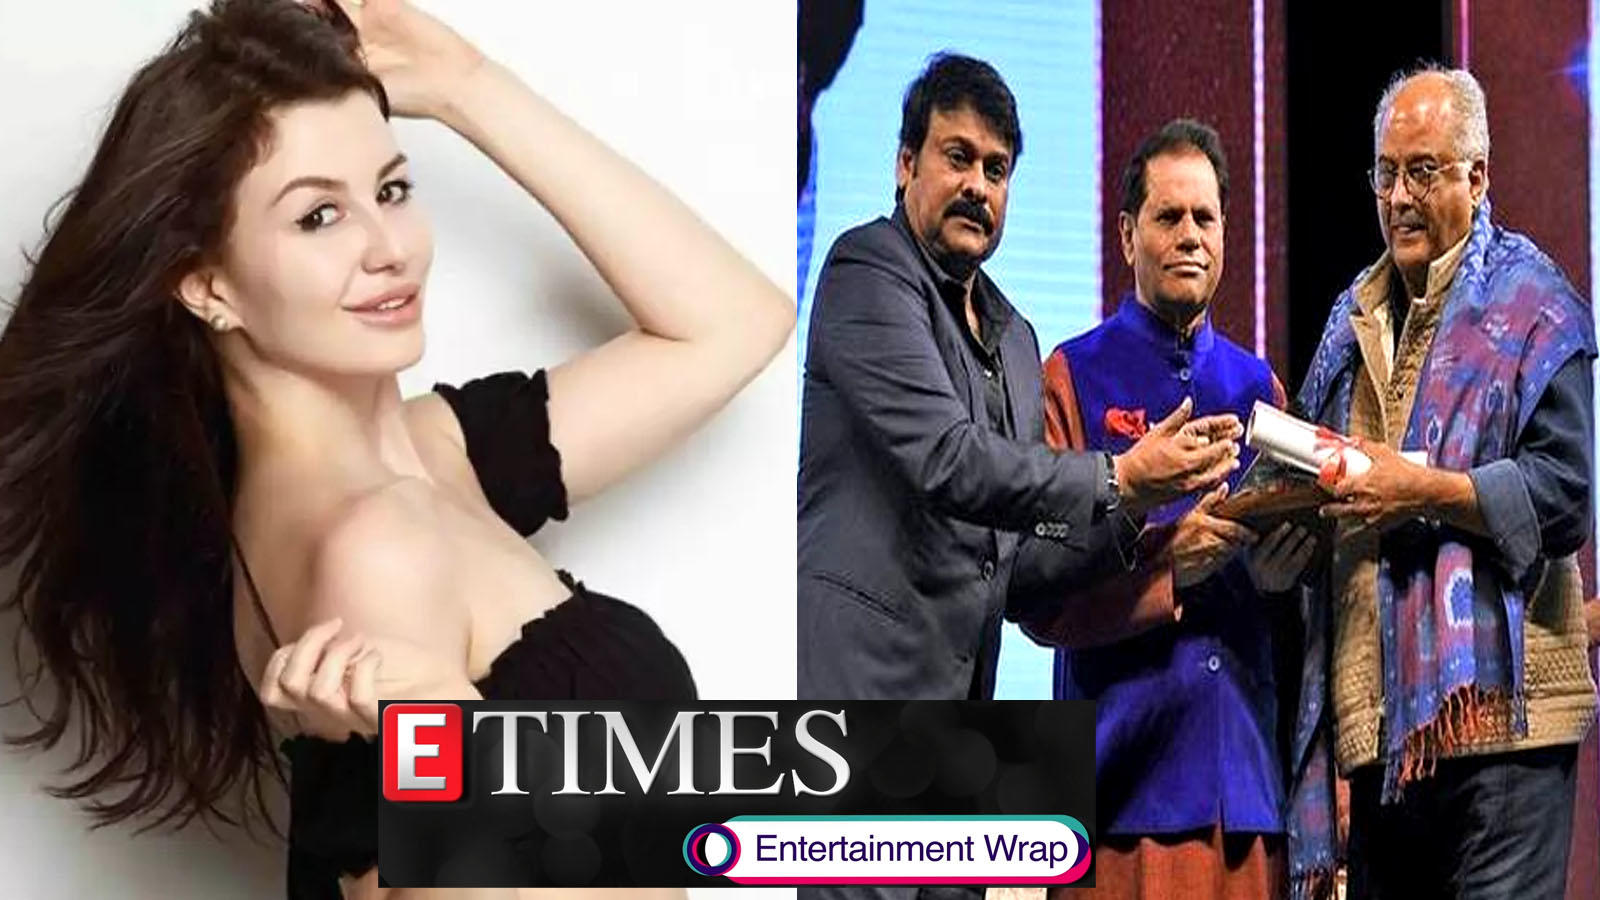 arbaaz-khans-rumoured-girlfriend-giorgia-andriani-groves-to-the-tune-of-saki-saki-boney-kapoor-gets-emotional-while-receiving-award-on-behalf-of-late-wife-sridevi-and-more-